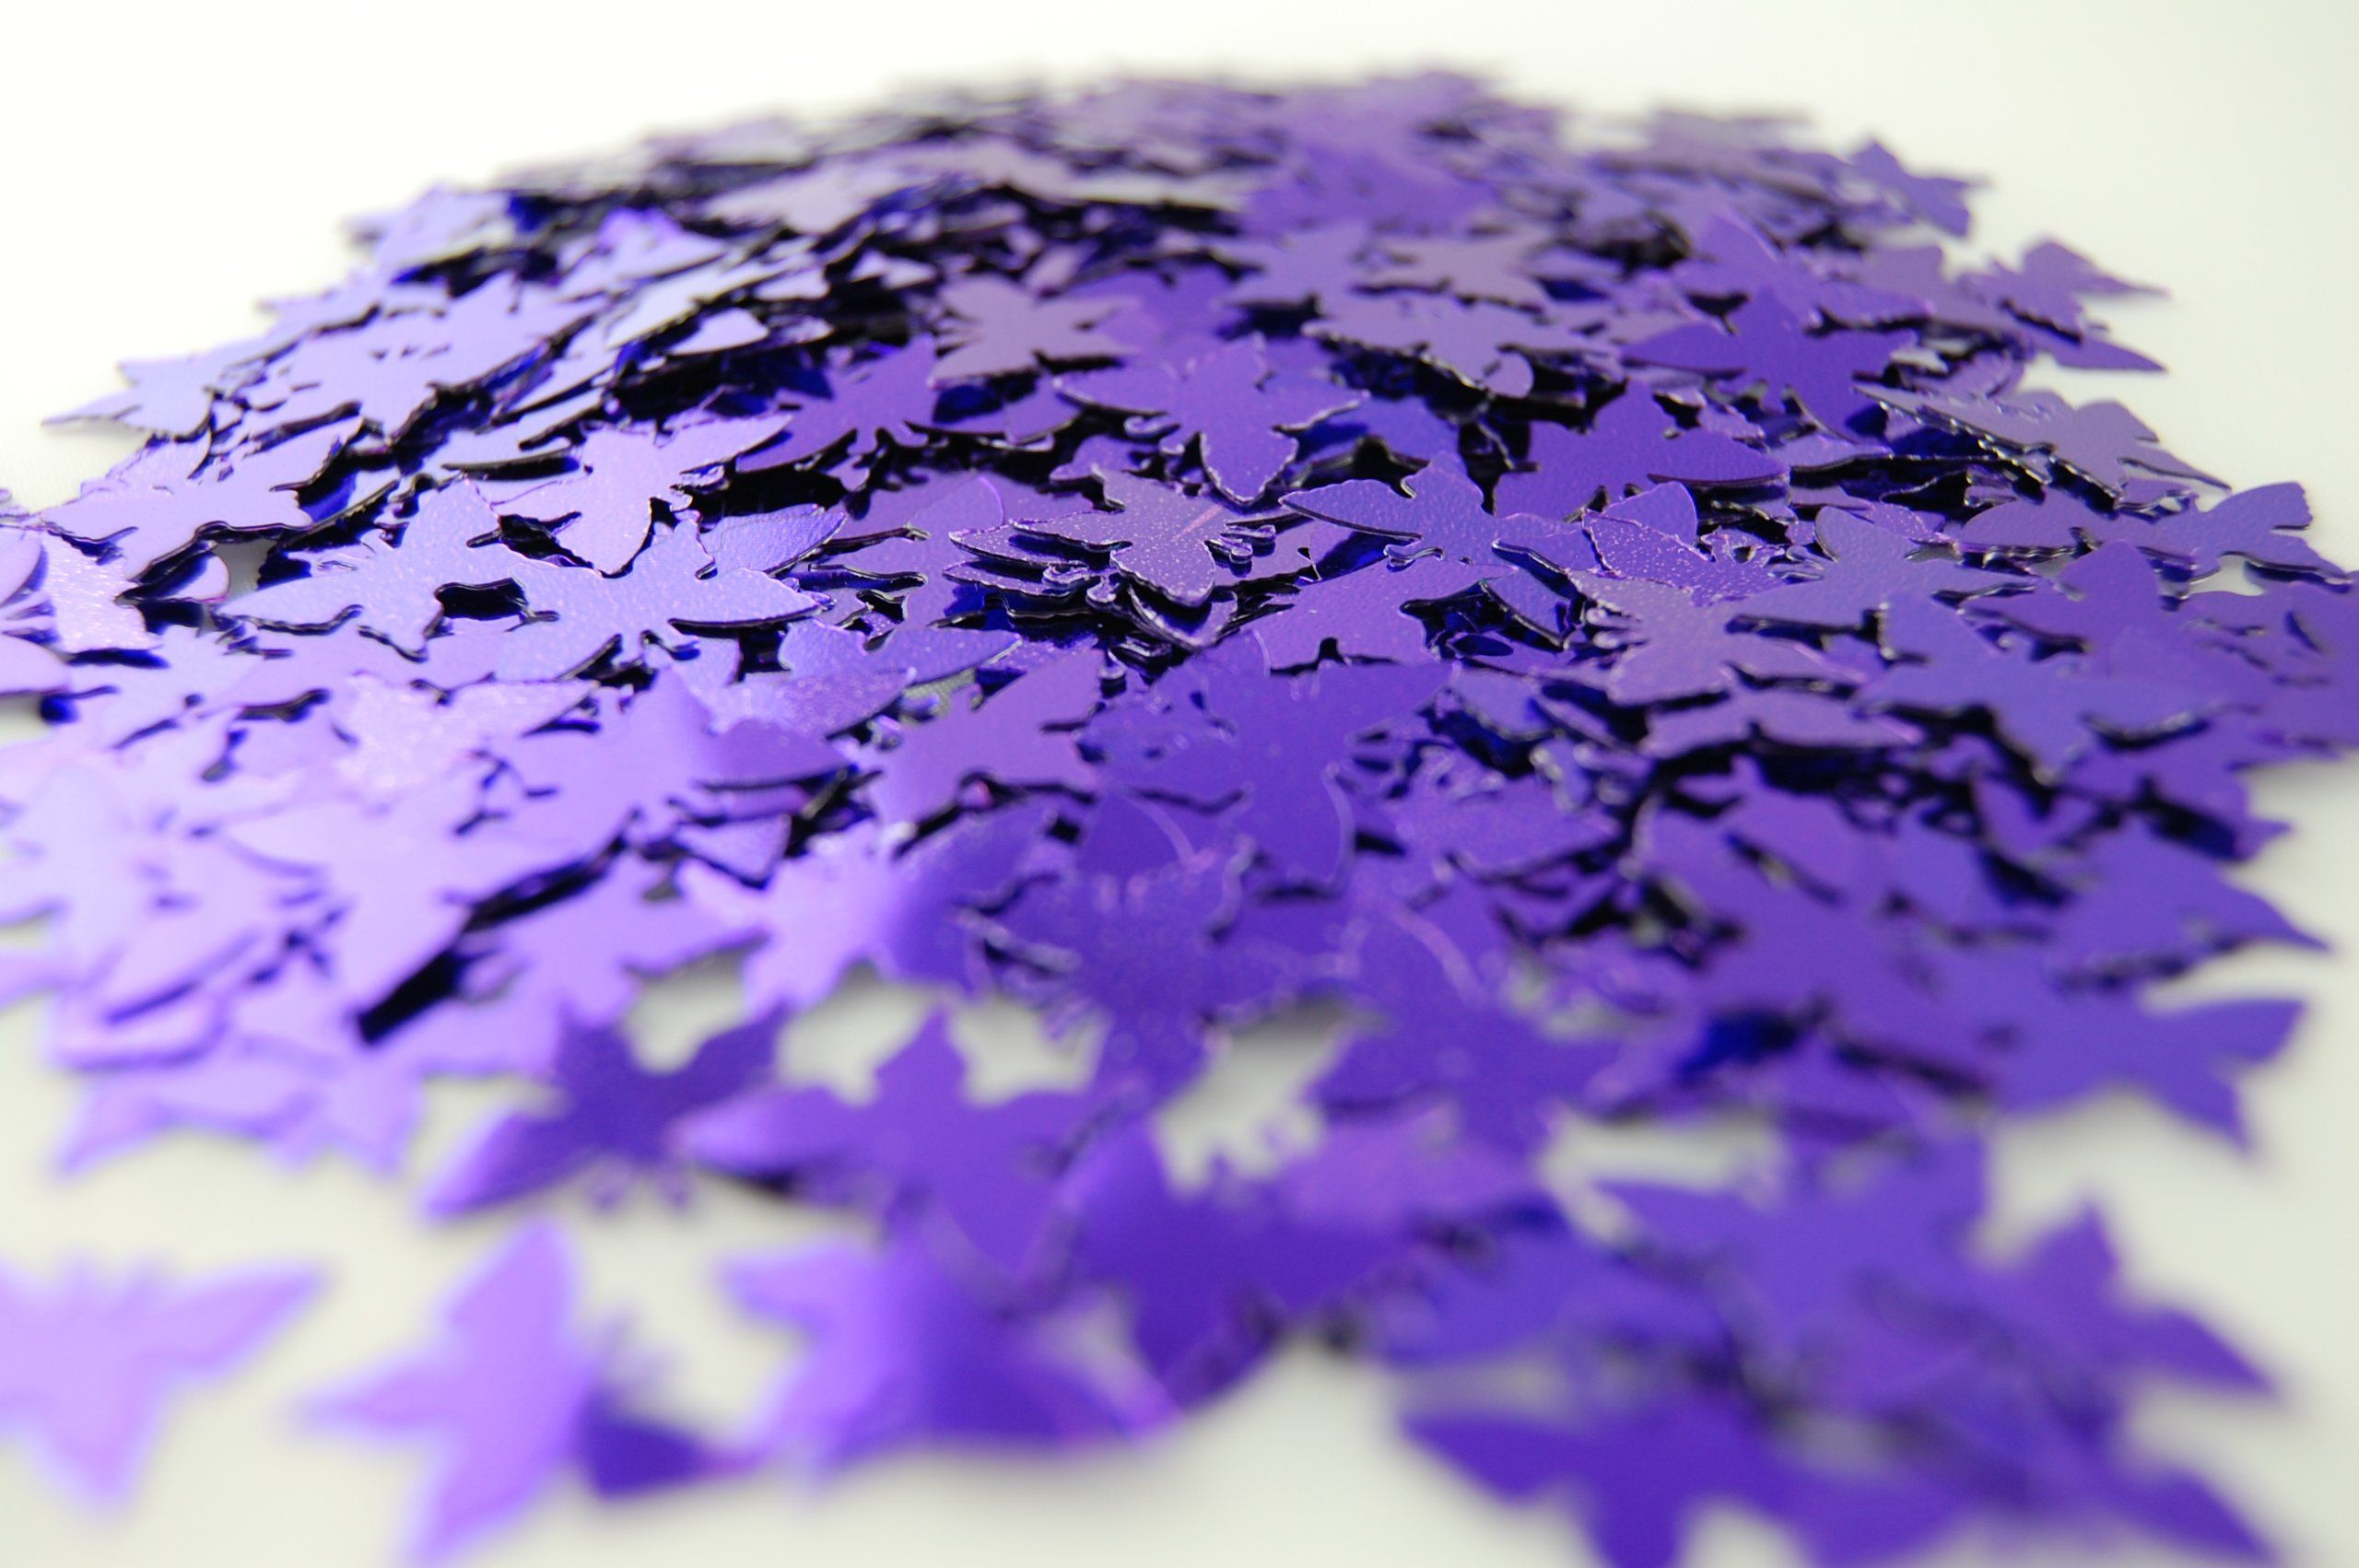 Purple butterfly table confetti wedding party decoration amazon purple butterfly table confetti wedding party decoration amazon toys junglespirit Choice Image